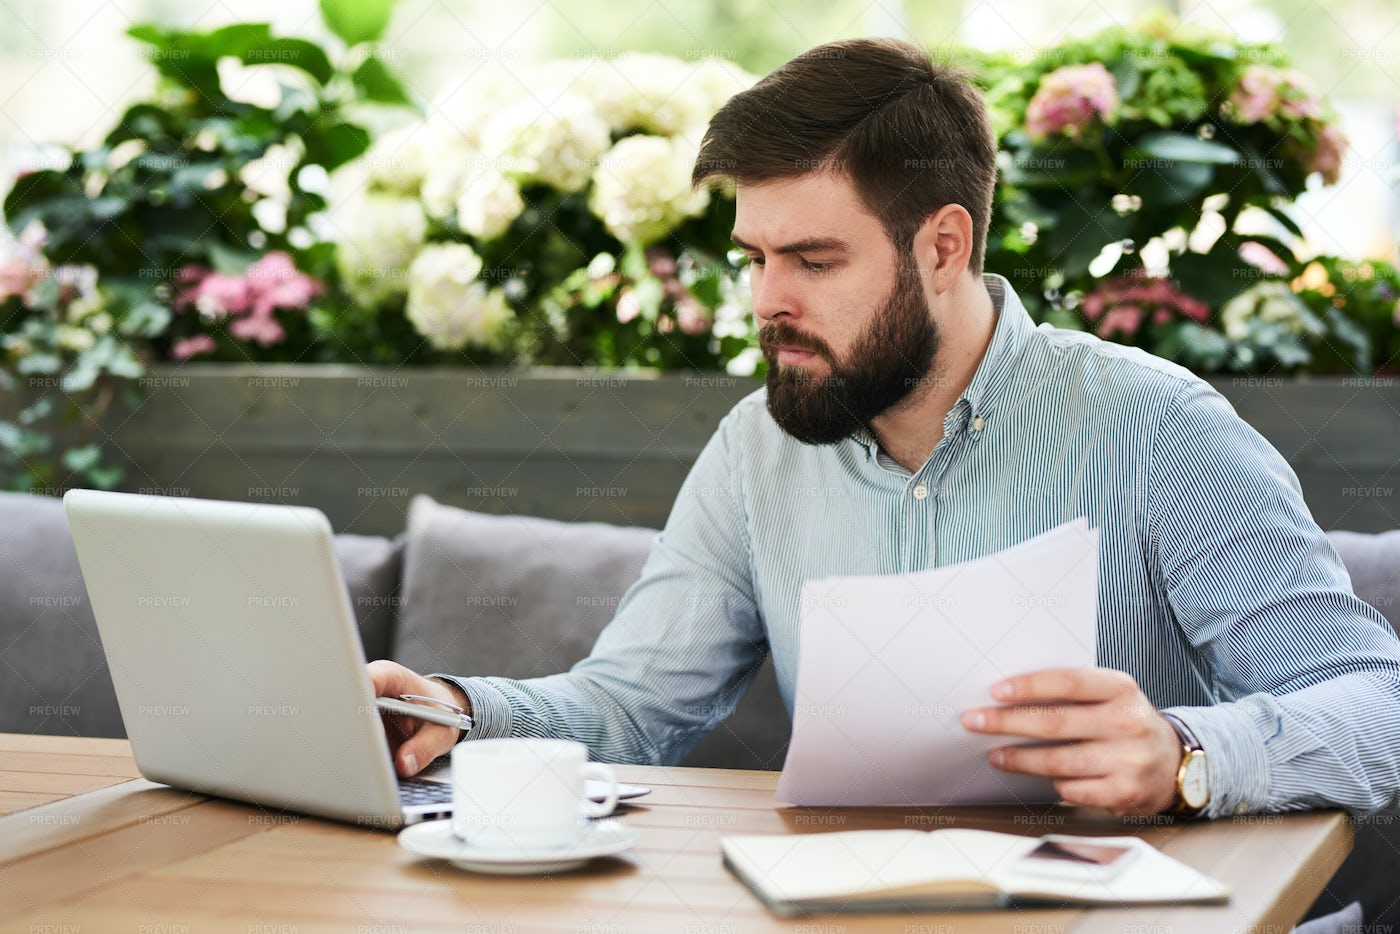 Busy Businessman Working In Cafe: Stock Photos